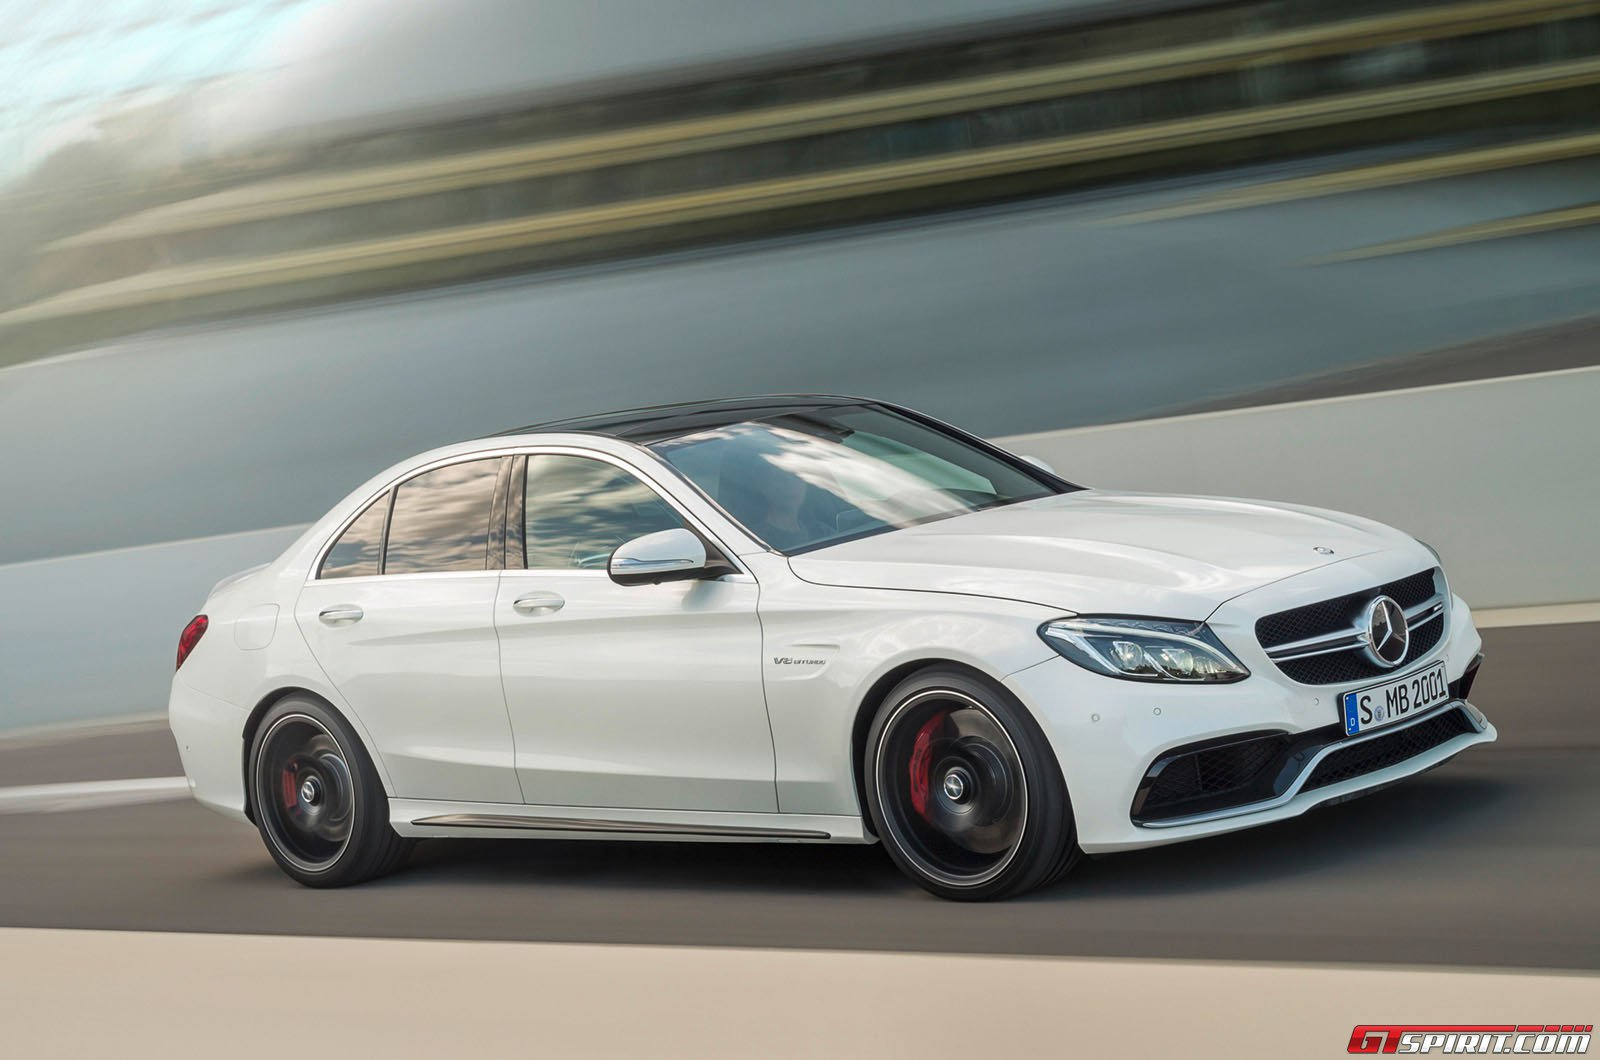 Mercedes Benz furthermore New Supersprint Performance Exhaust For Mercedes A45 Amg In Development as well 2015 Mercedes Benz C 63 Amg S Review moreover 2018 Mercedes Cclass Interior Facelift besides Mercedes Amg C 63 Coupe Revealed For Your Eyes Only. on mercedes c63 amg sedan